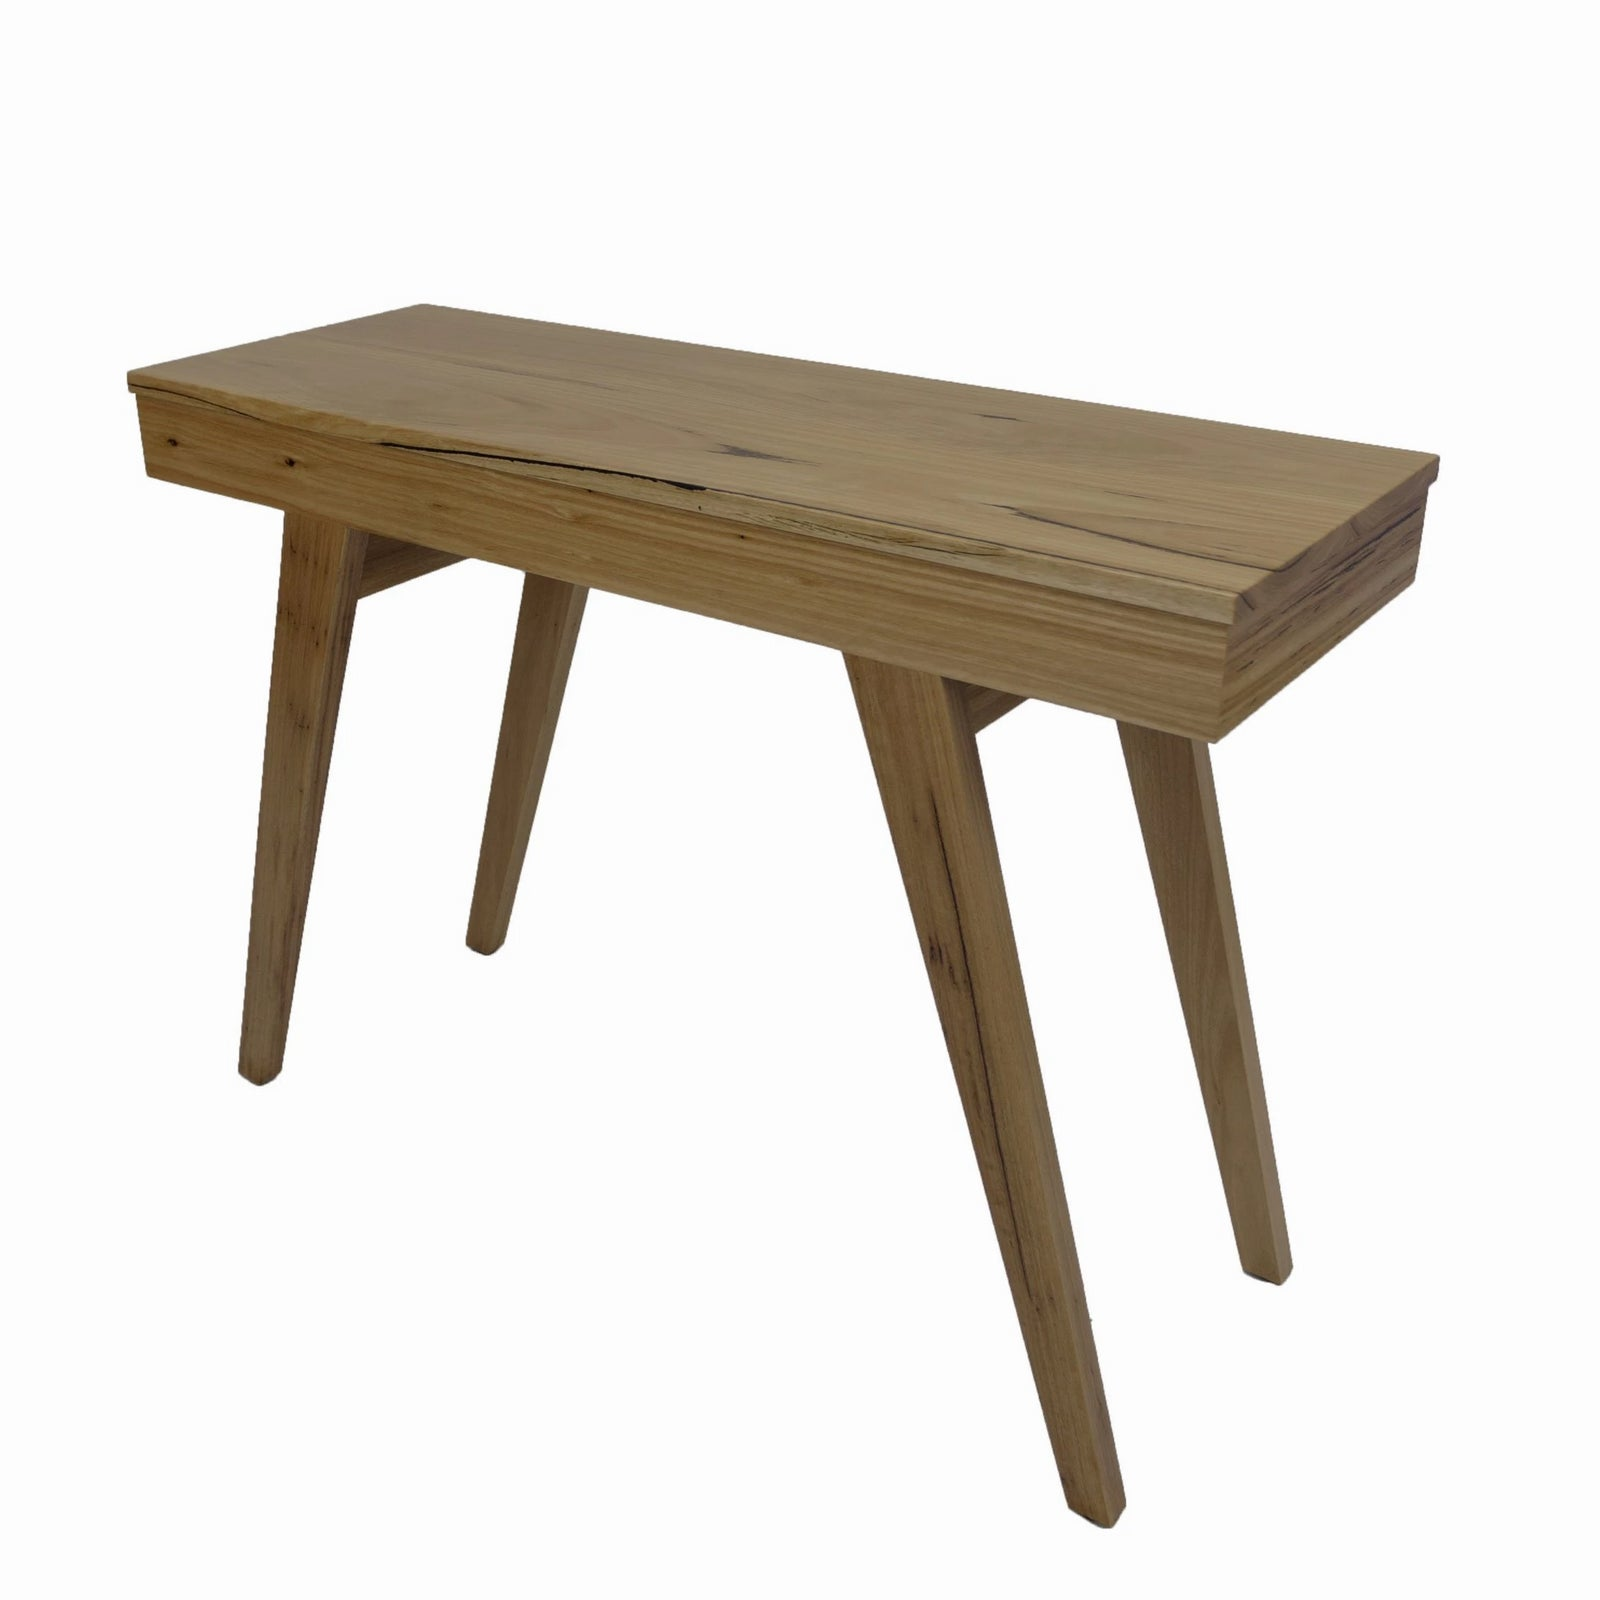 Splay Leg Hall Table